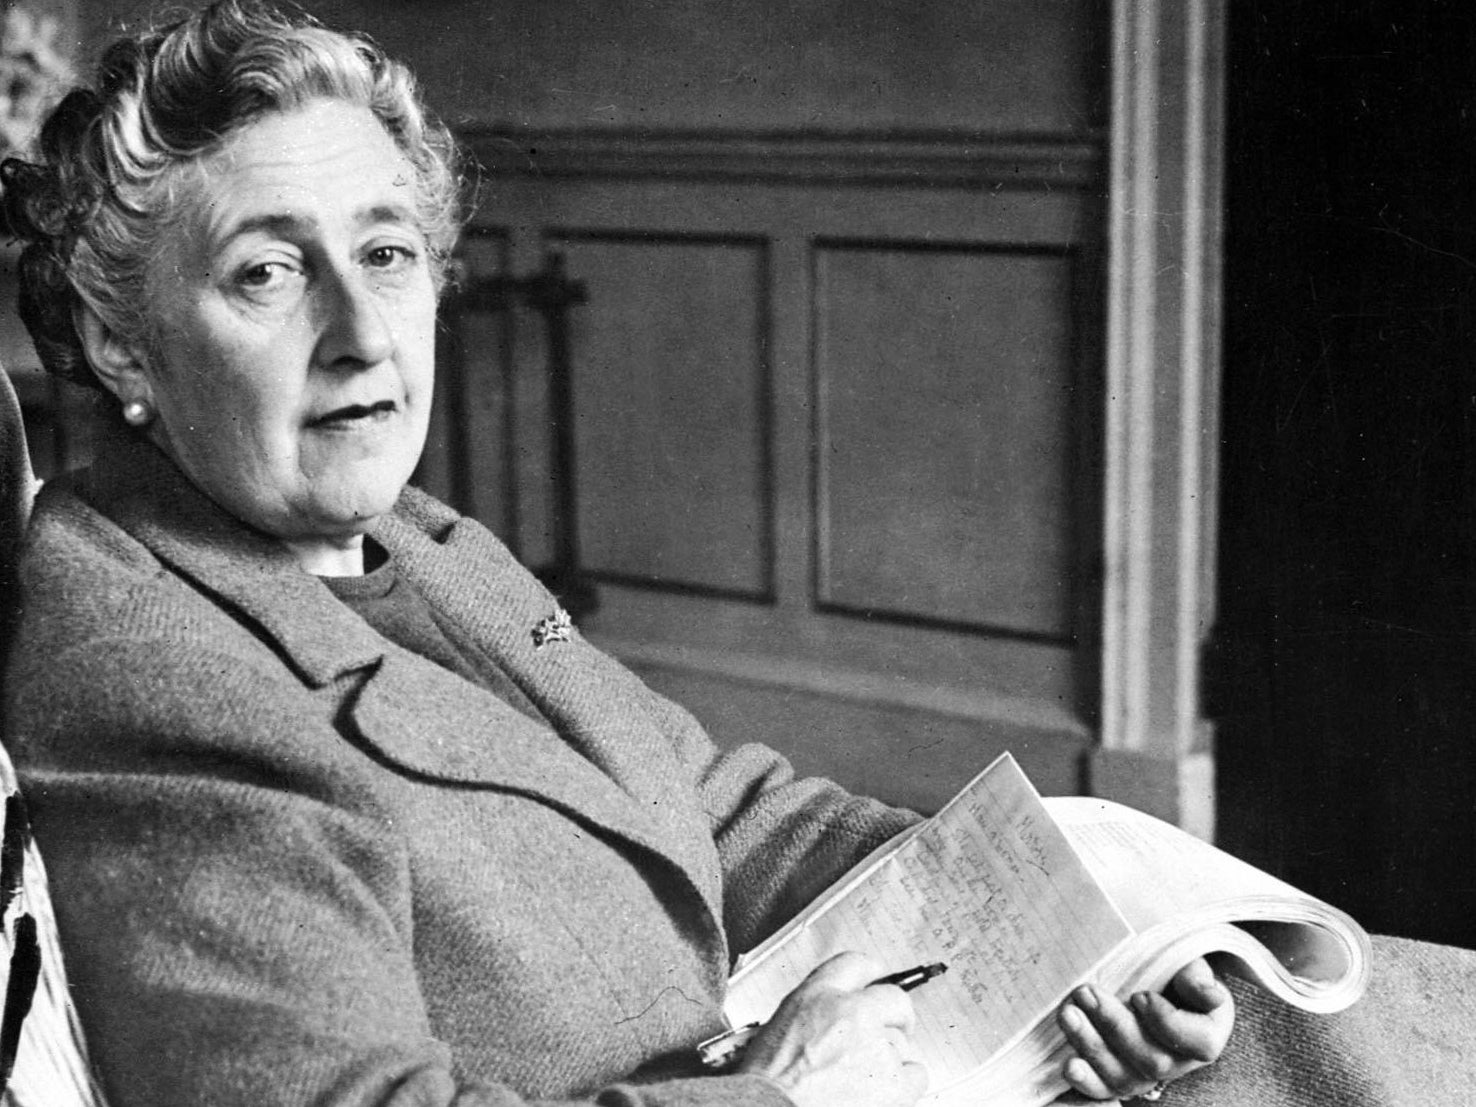 Agatha Christie's 10 best novels, from Death on the Nile to The ABC Murders